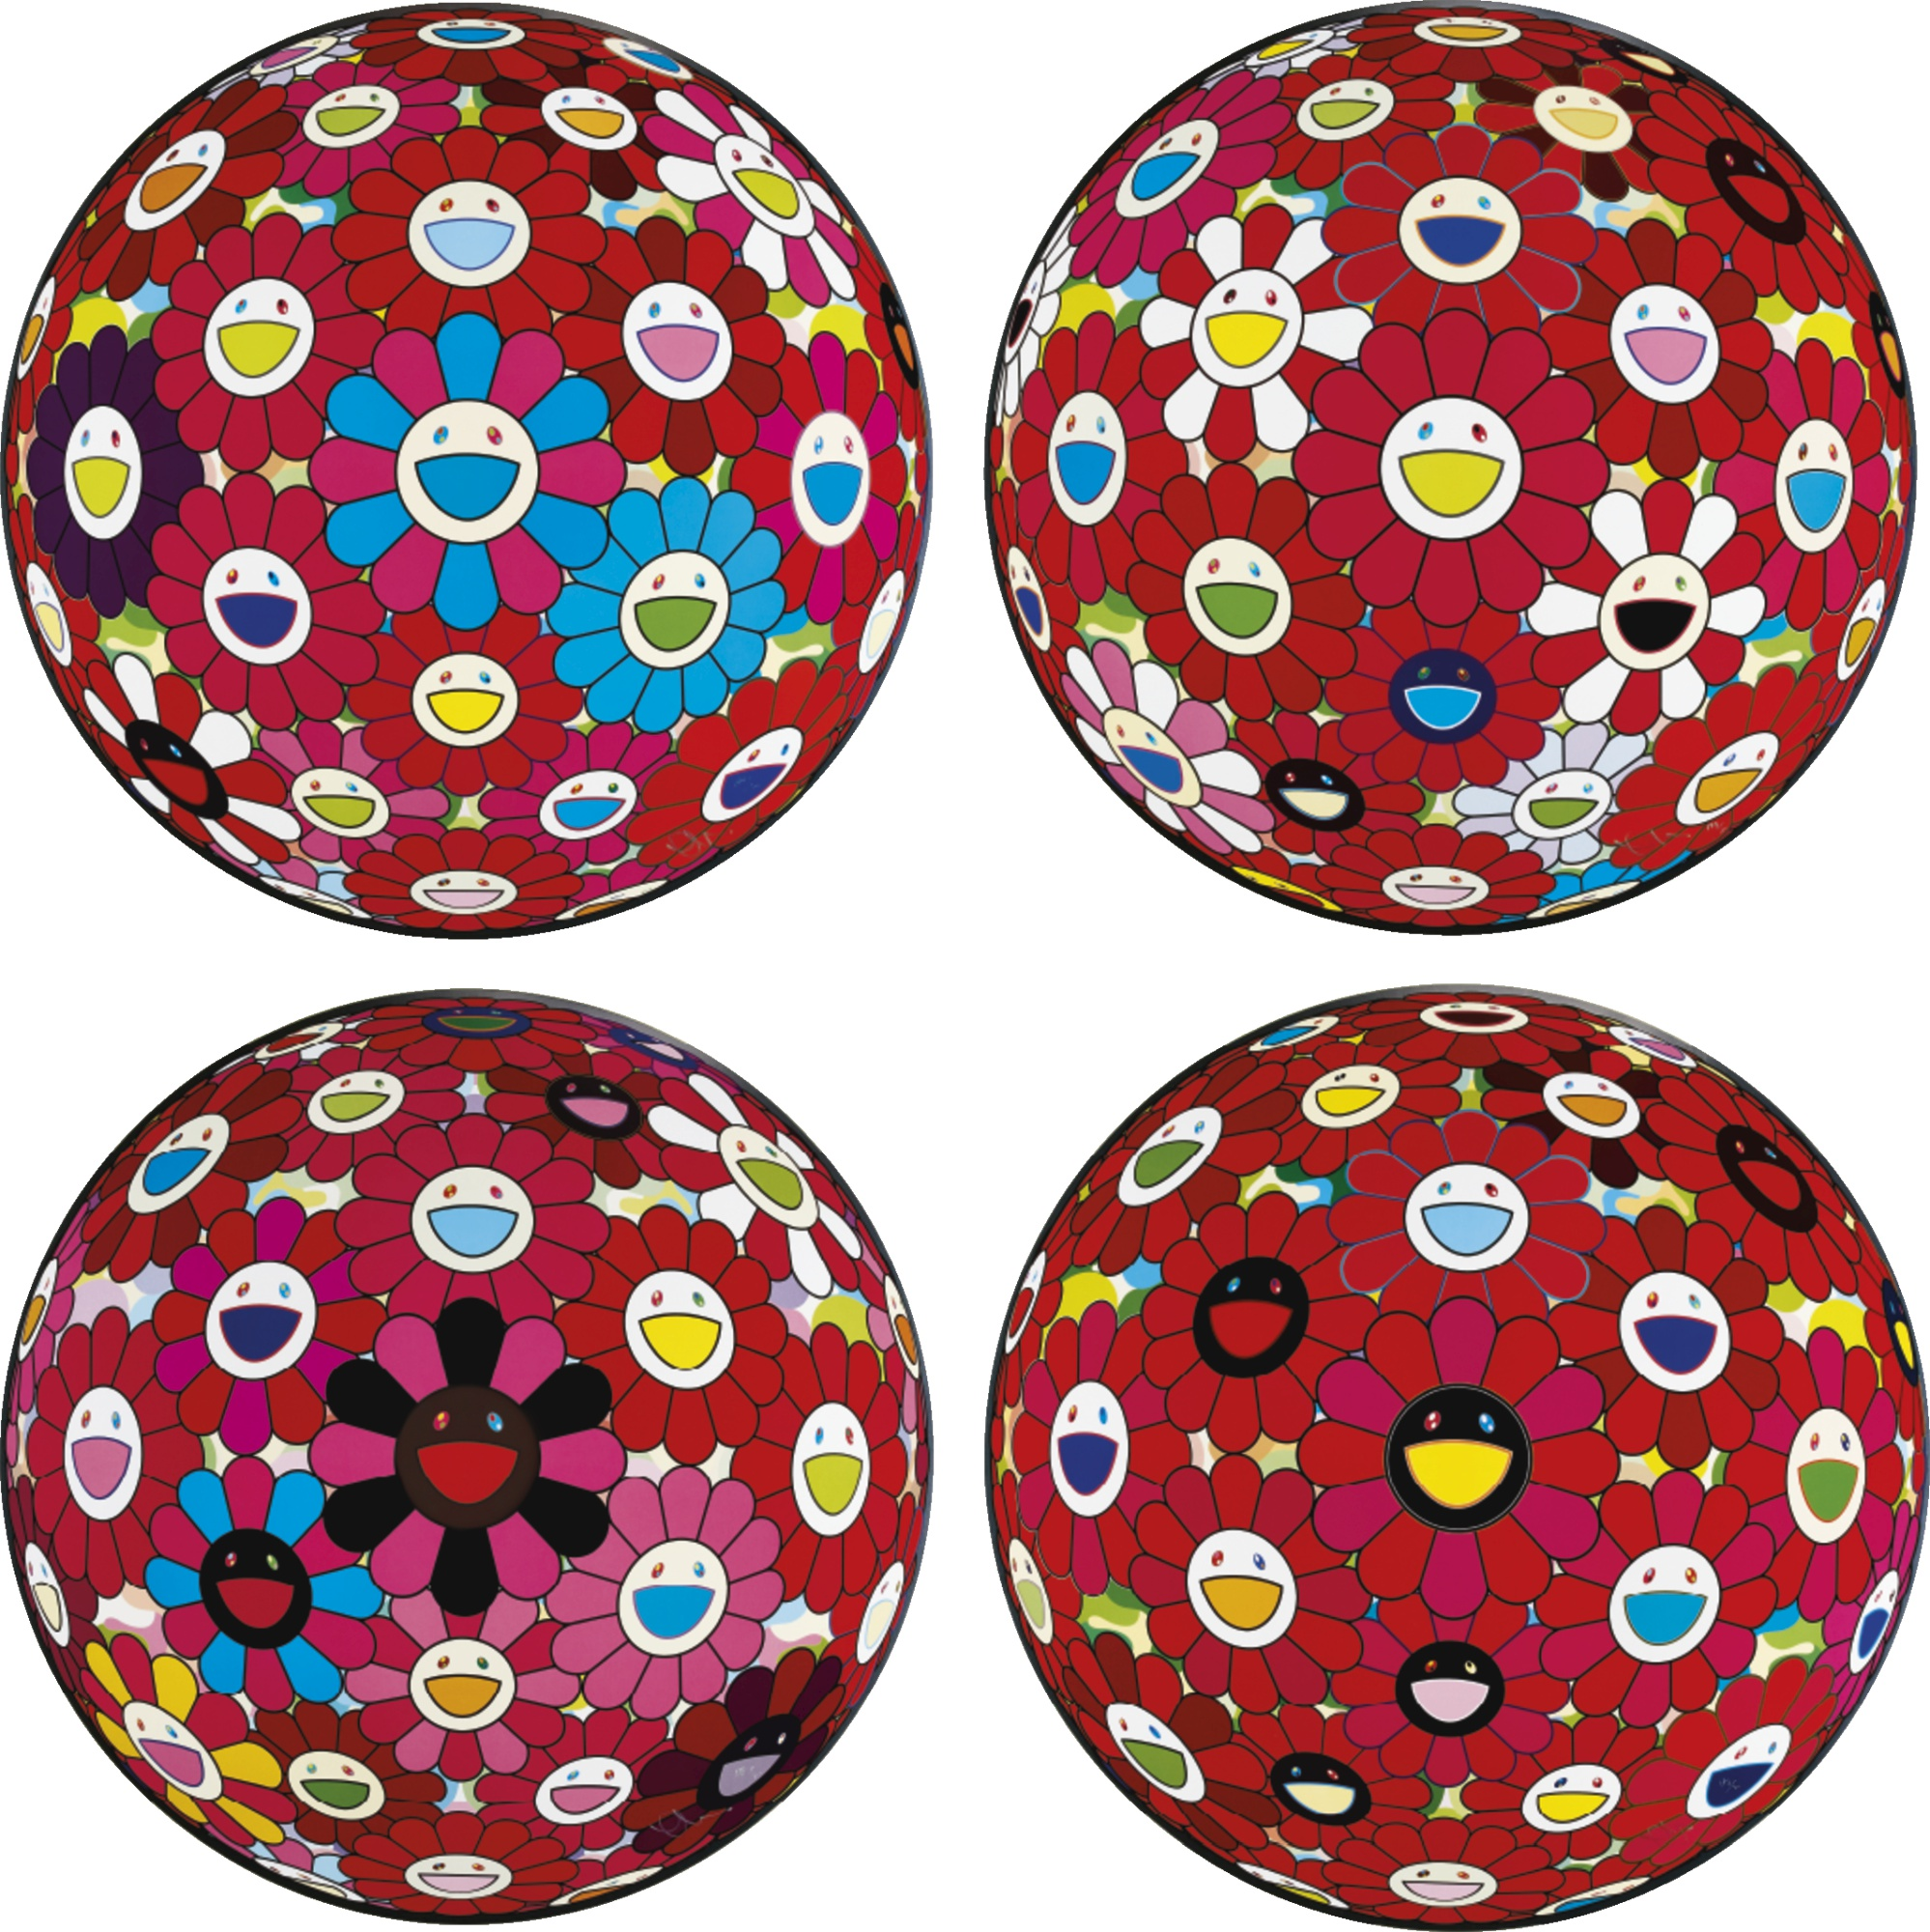 Takashi Murakami-A Collection Of Ten Flowerball Prints-2014